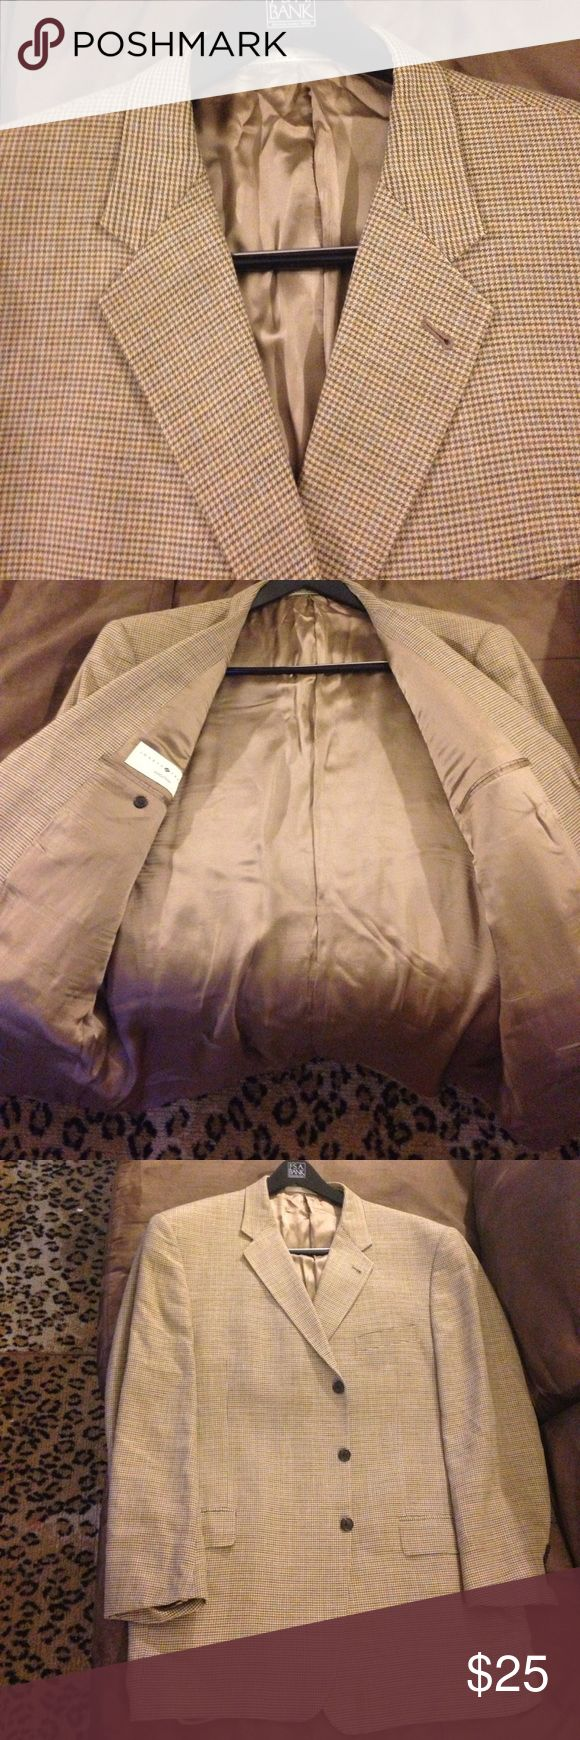 Joseph Abboud Tan & Blue Check Blazer 48L Long Joseph Abboud Tan, Gold, Blue and Brown Houndstooth Check Sport Coat Blazer size 48L Long, 3 Button and no vents! Great condition! Please make REASONABLE offers and Bundle! Ask questions :) Joseph Abboud Suits & Blazers Sport Coats & Blazers